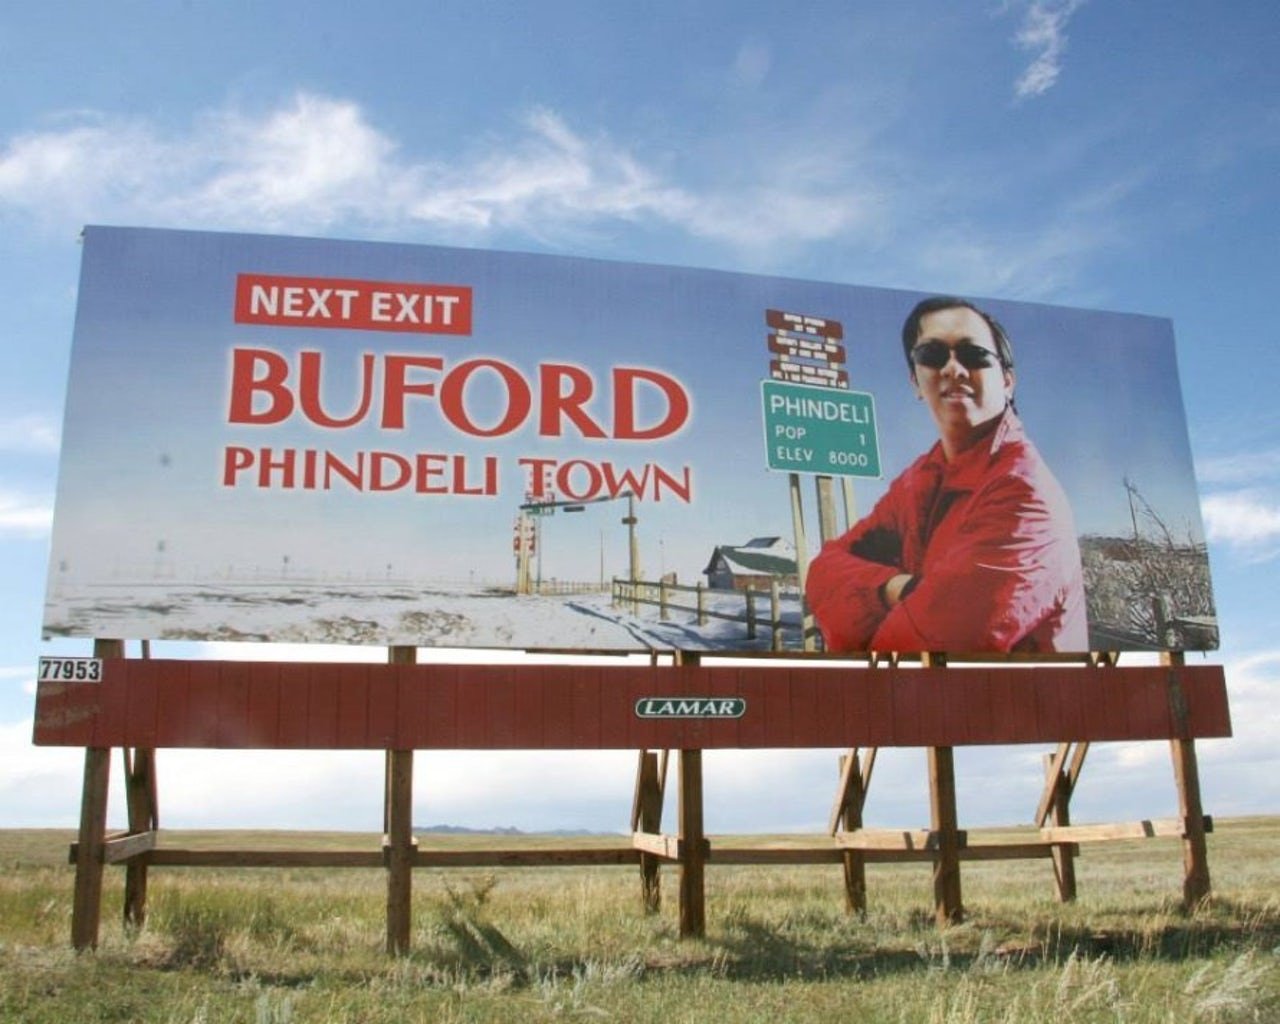 The owner of PhinDeli Town Buford poses on the town's welcome sign